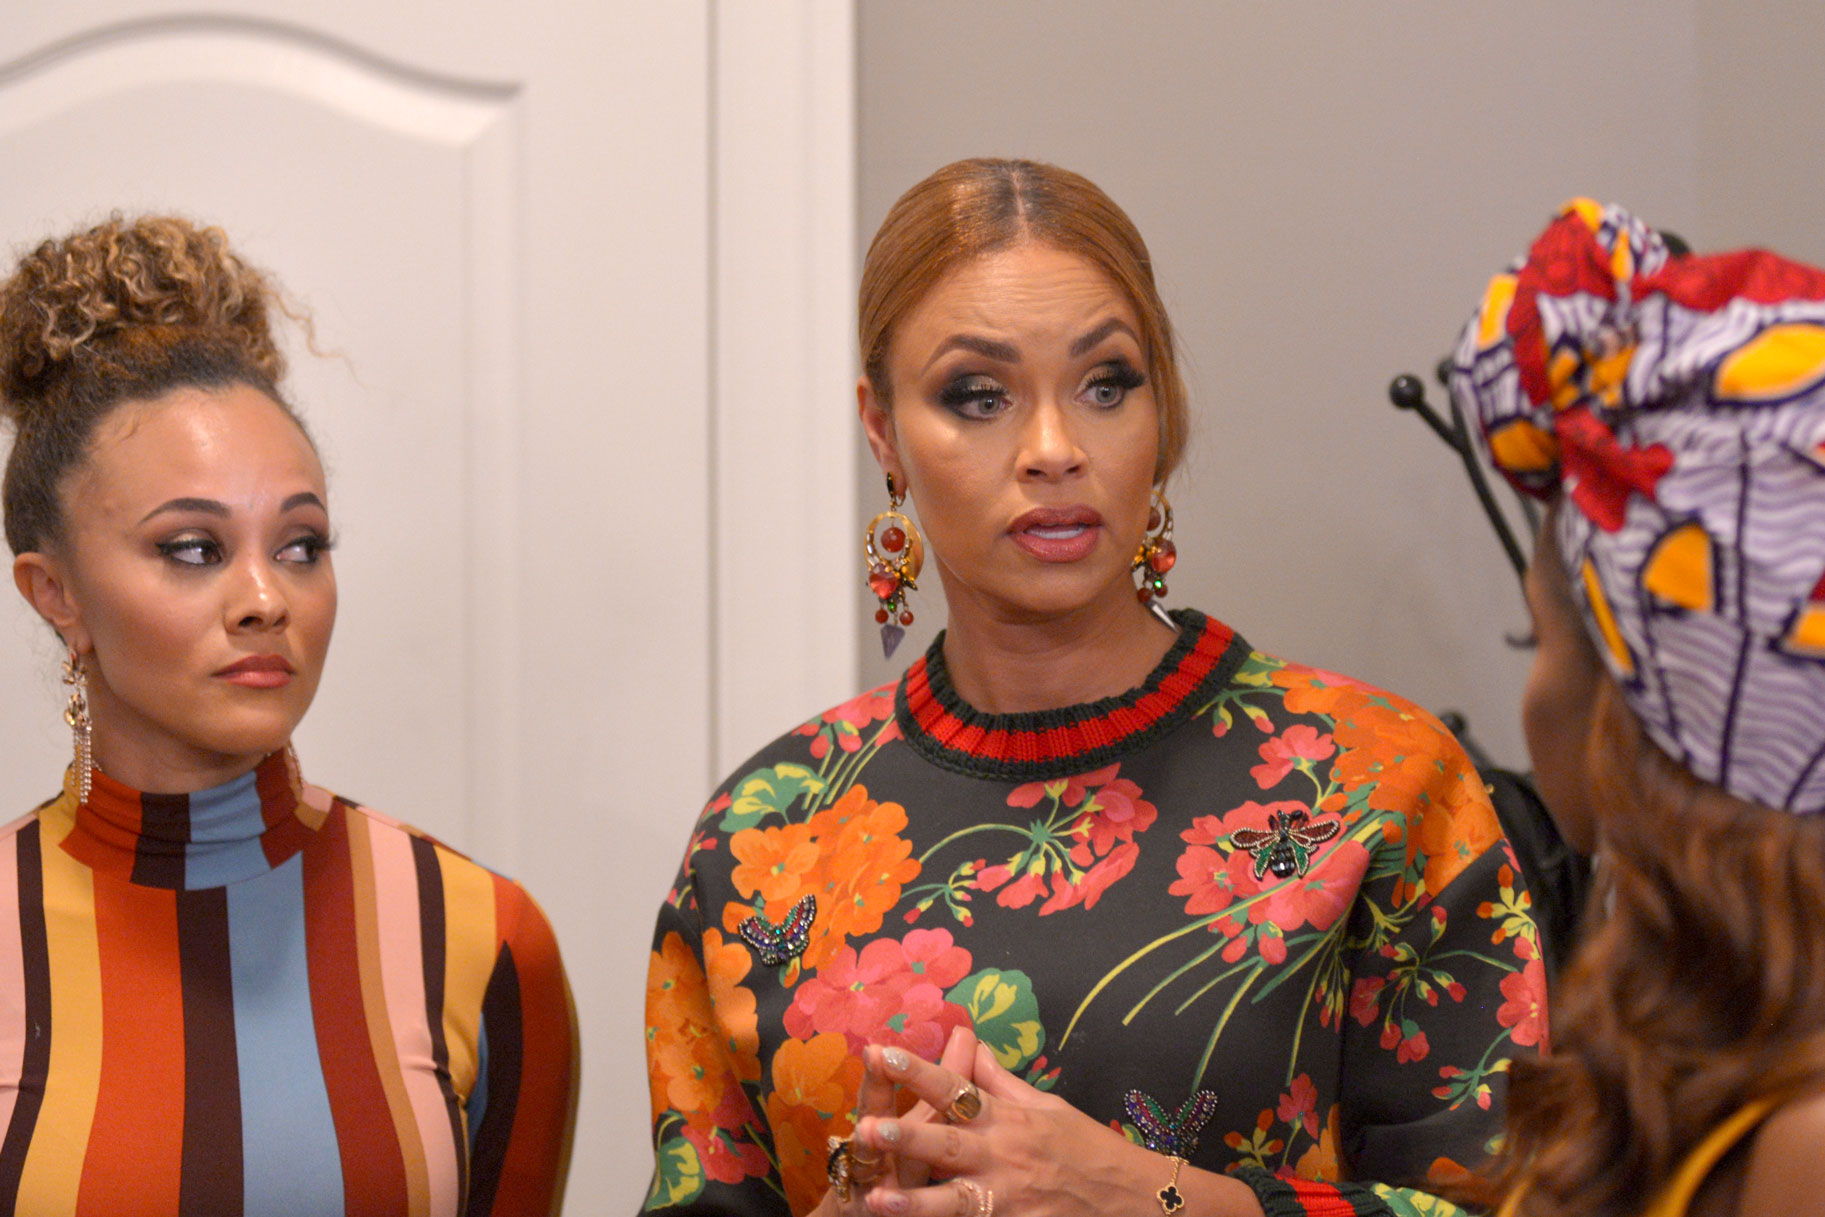 Ashley Darby, Gizelle Bryant, and Candiace Dillard Bassett in The Real Housewives of Potomac Season 4